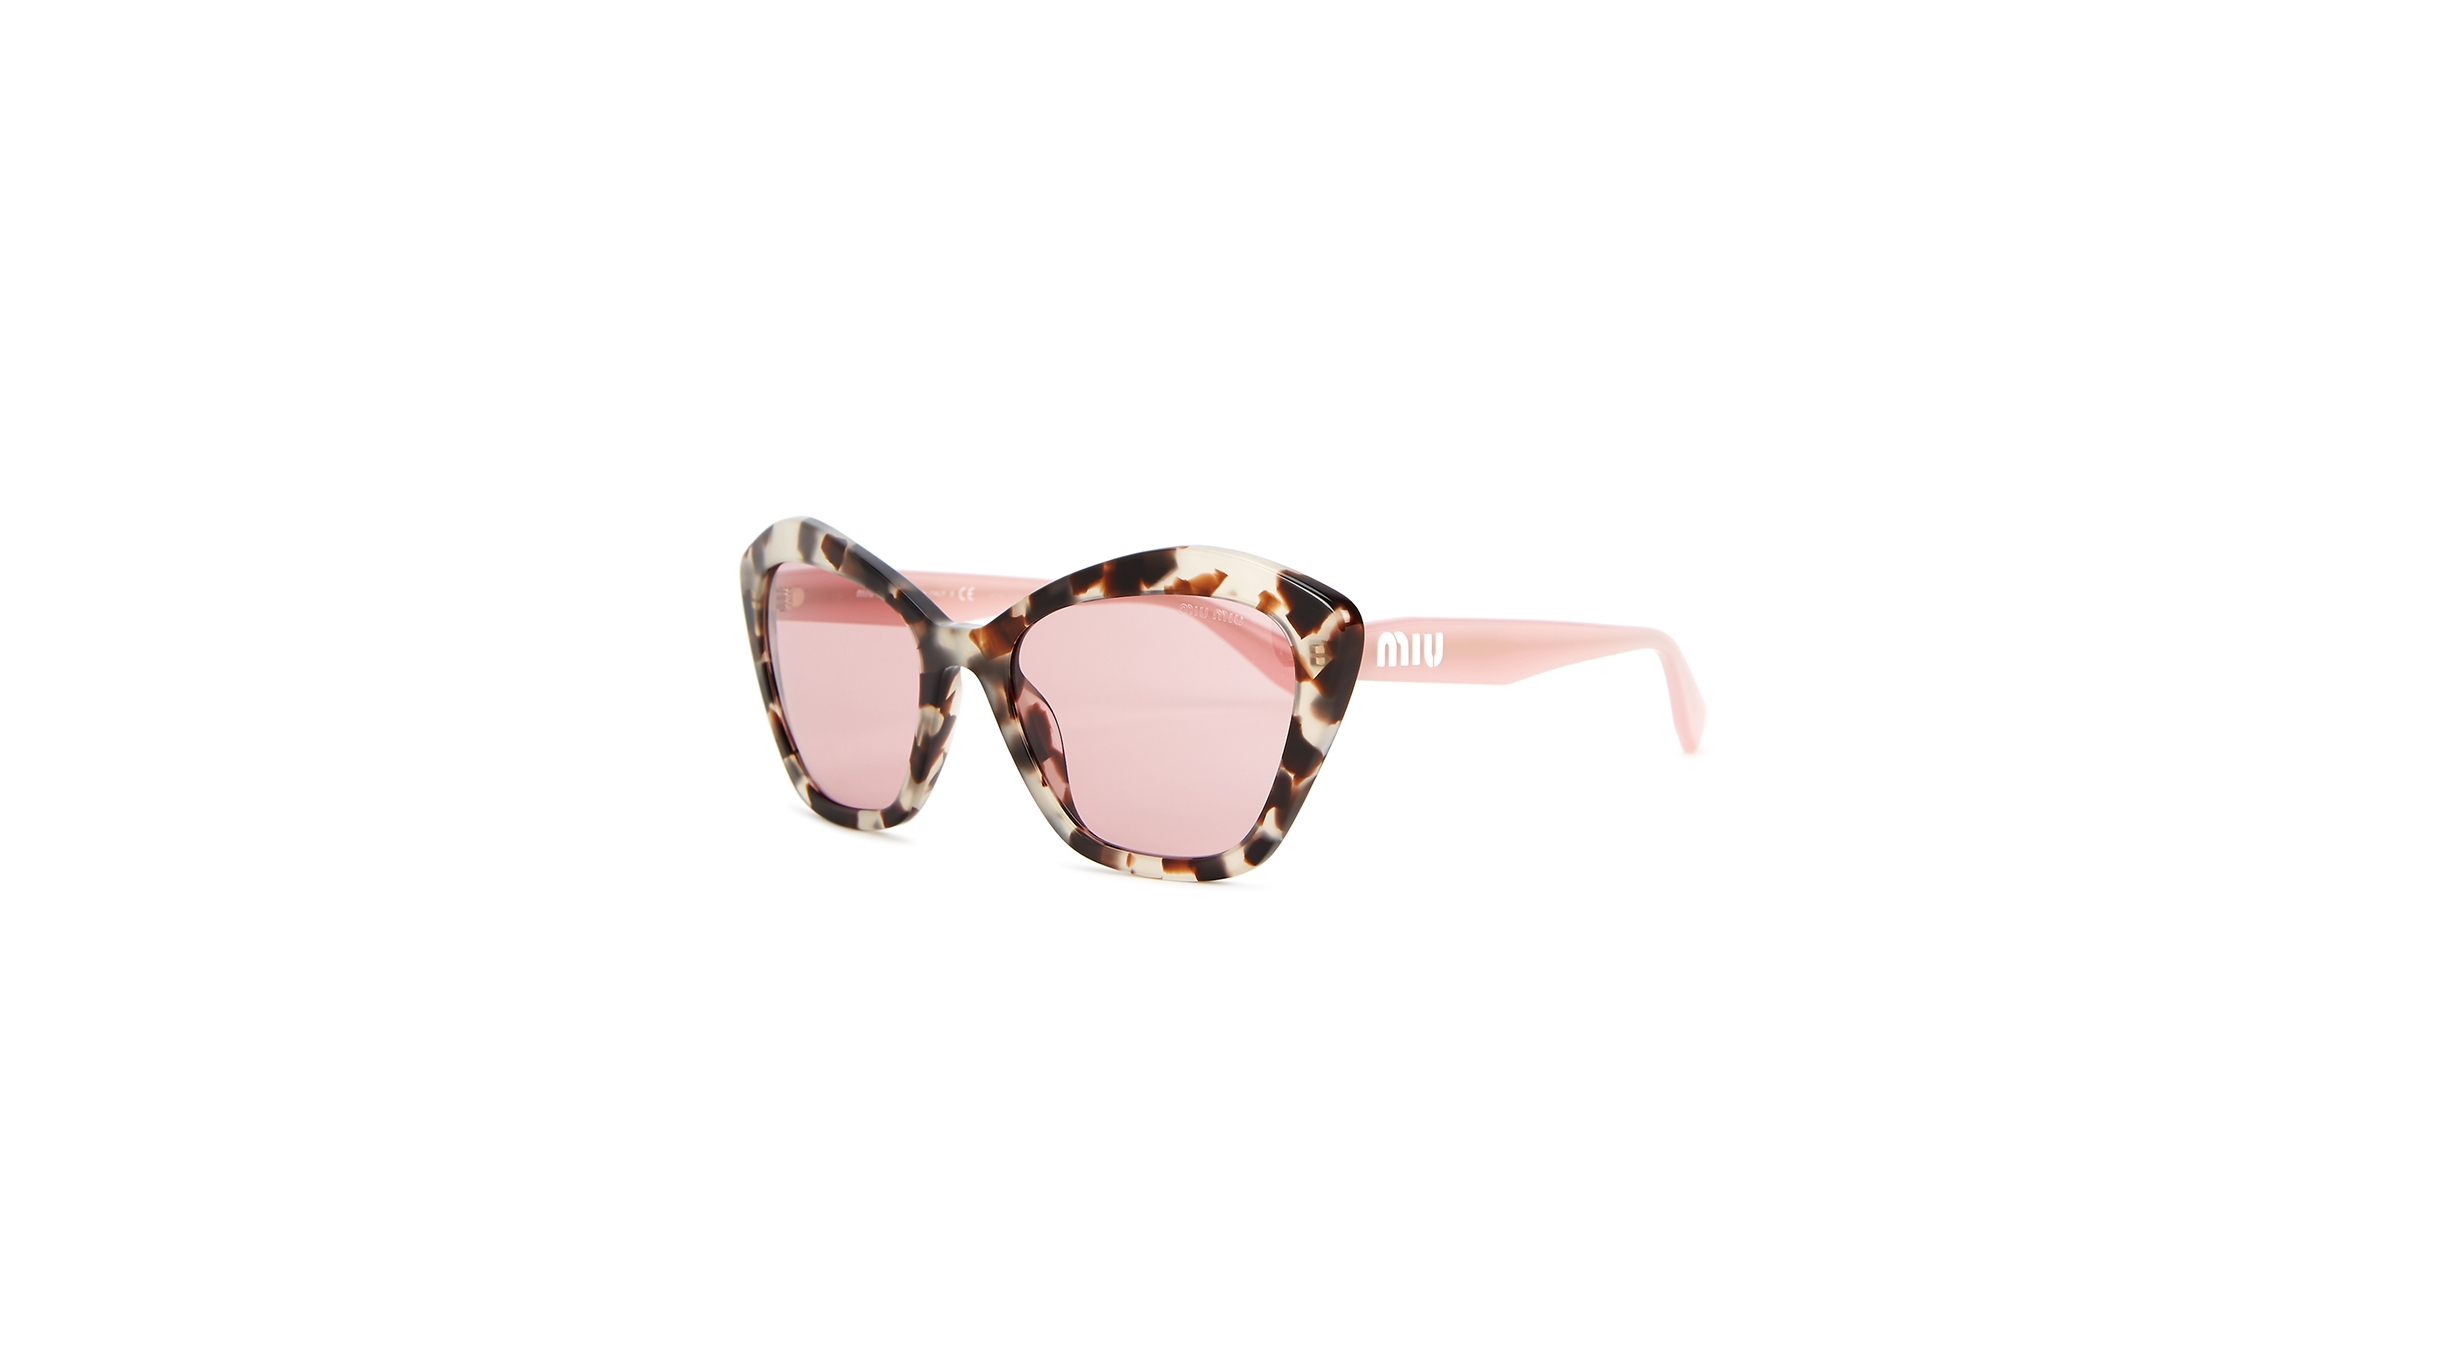 1536d8d05d Miu Miu Tortoiseshell cat-eye sunglasses - Harvey Nichols